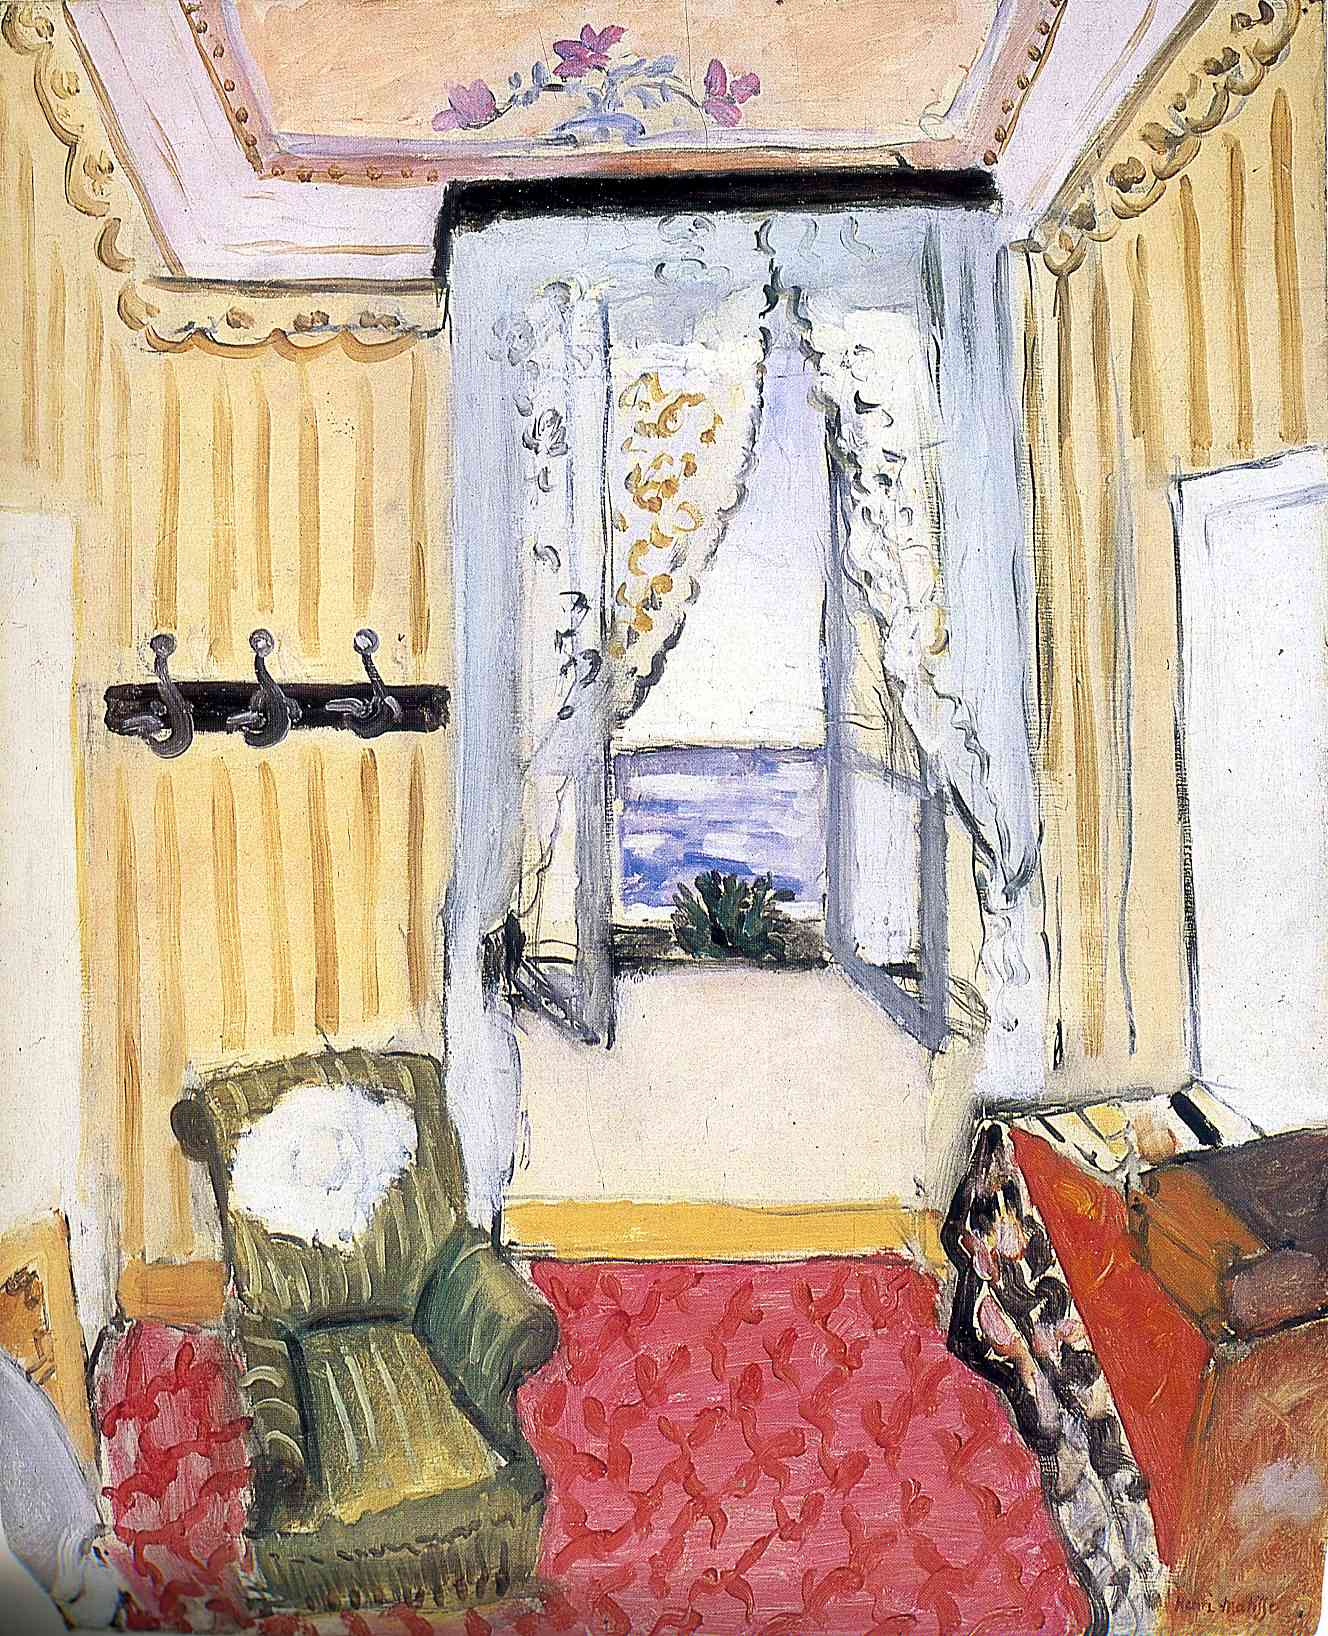 Henri Matisse - My Room at the Beau-Rivage 1918